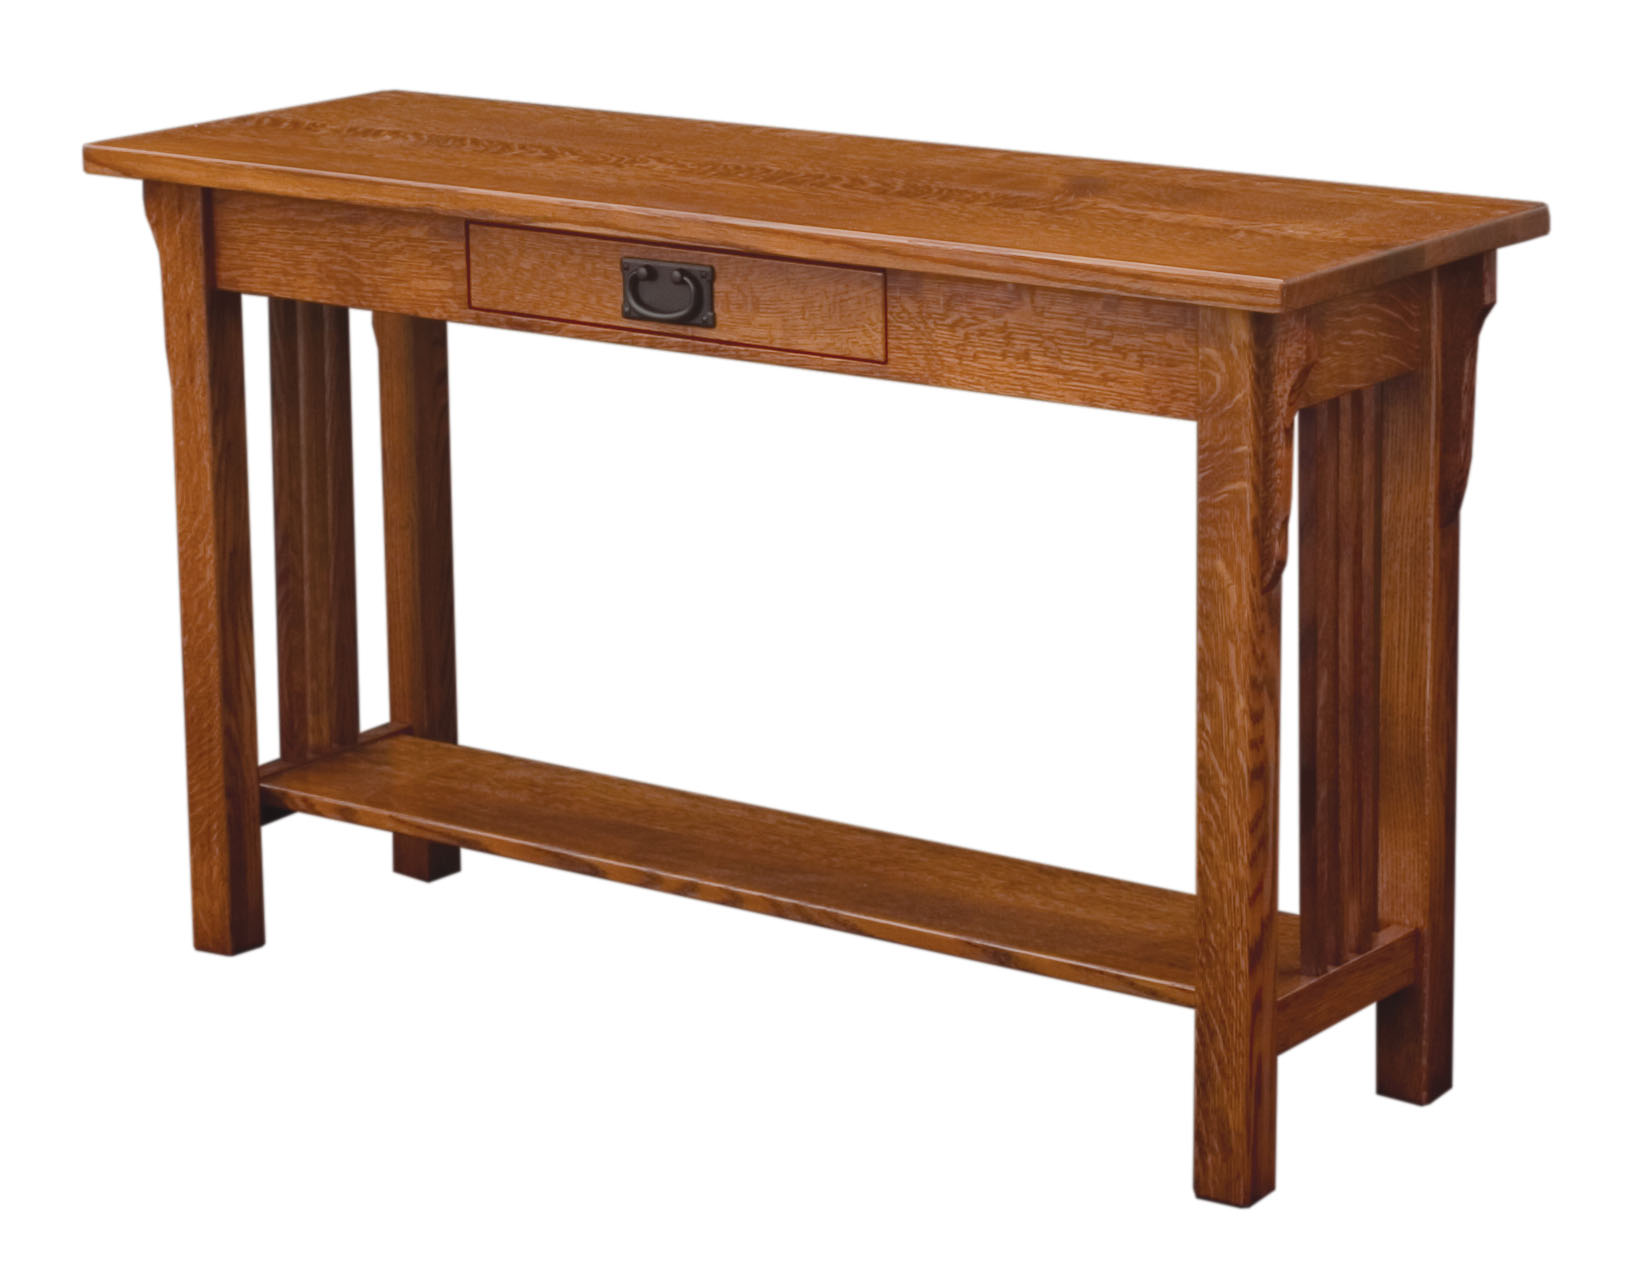 mission style oak sofa table saver dunelm mill camden  amish custom furniture